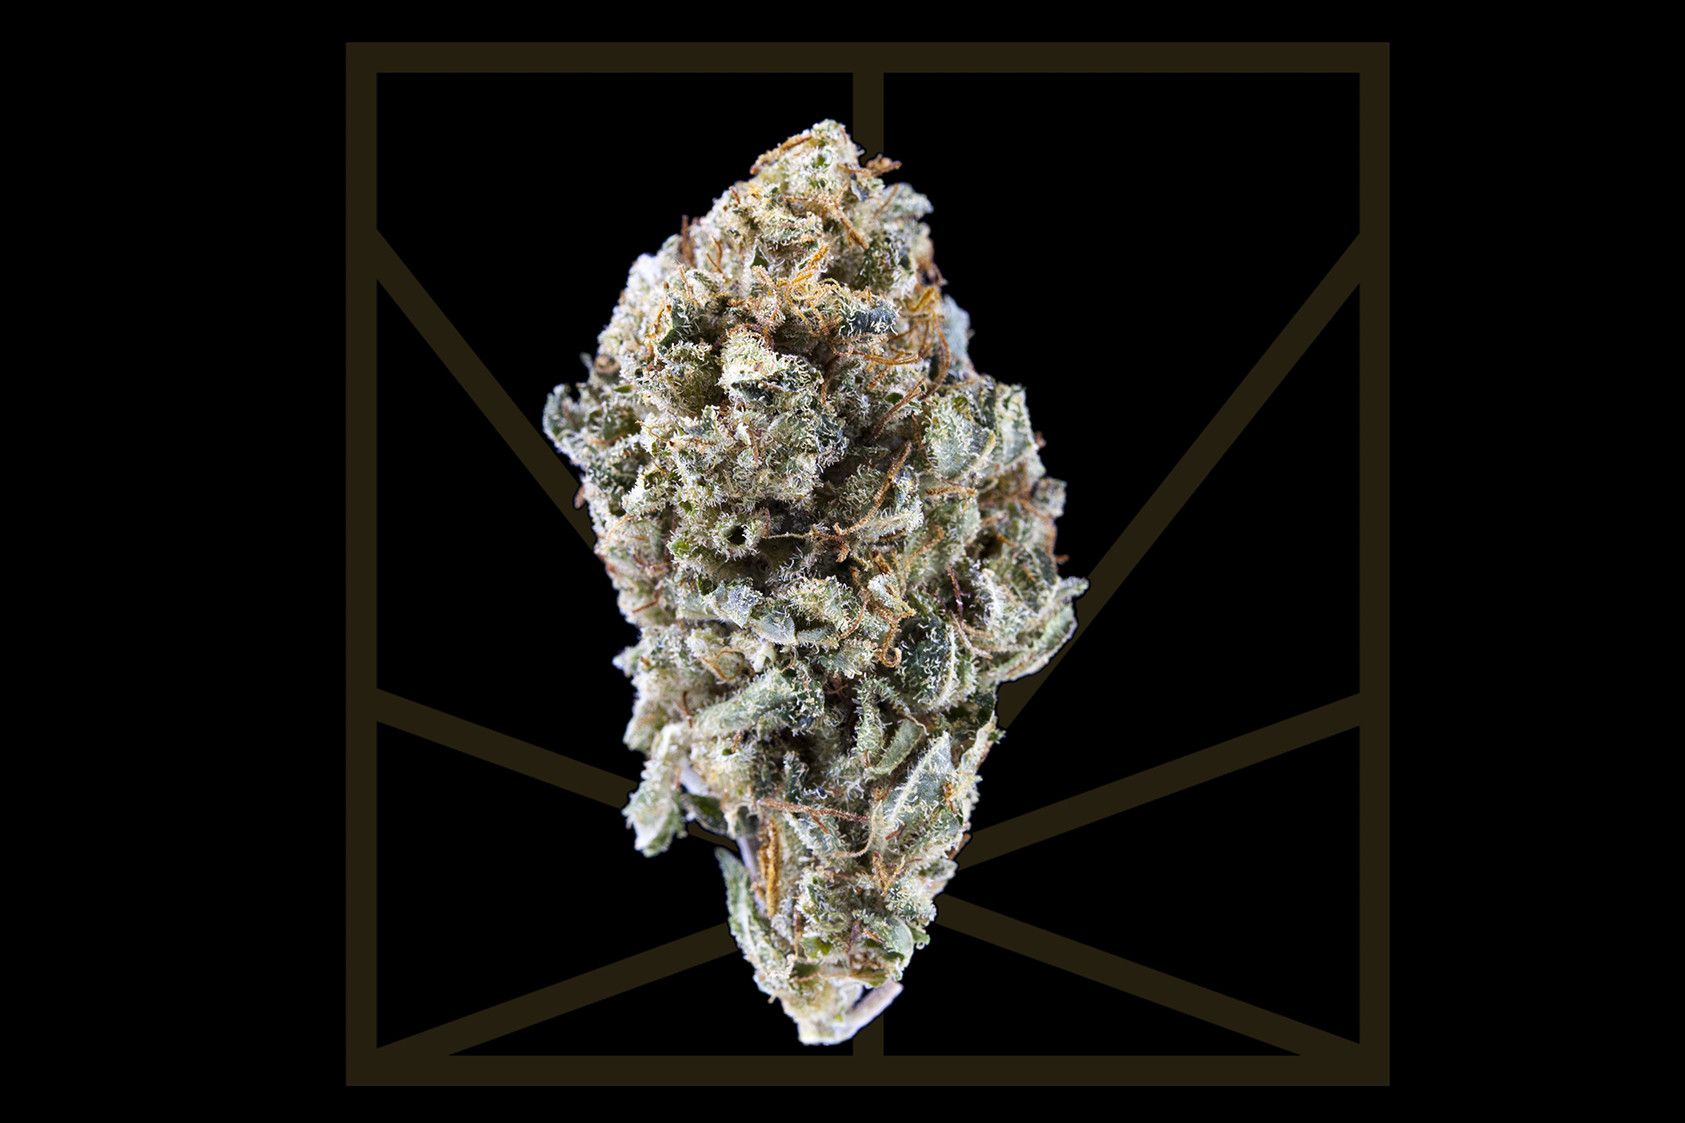 "<p><em>""Flexing like a yogi, drop it down with your hands up / Do a handstand, bend it back, put your legs up / I ain't got no worries, I'm my own private dancer""</em></p>